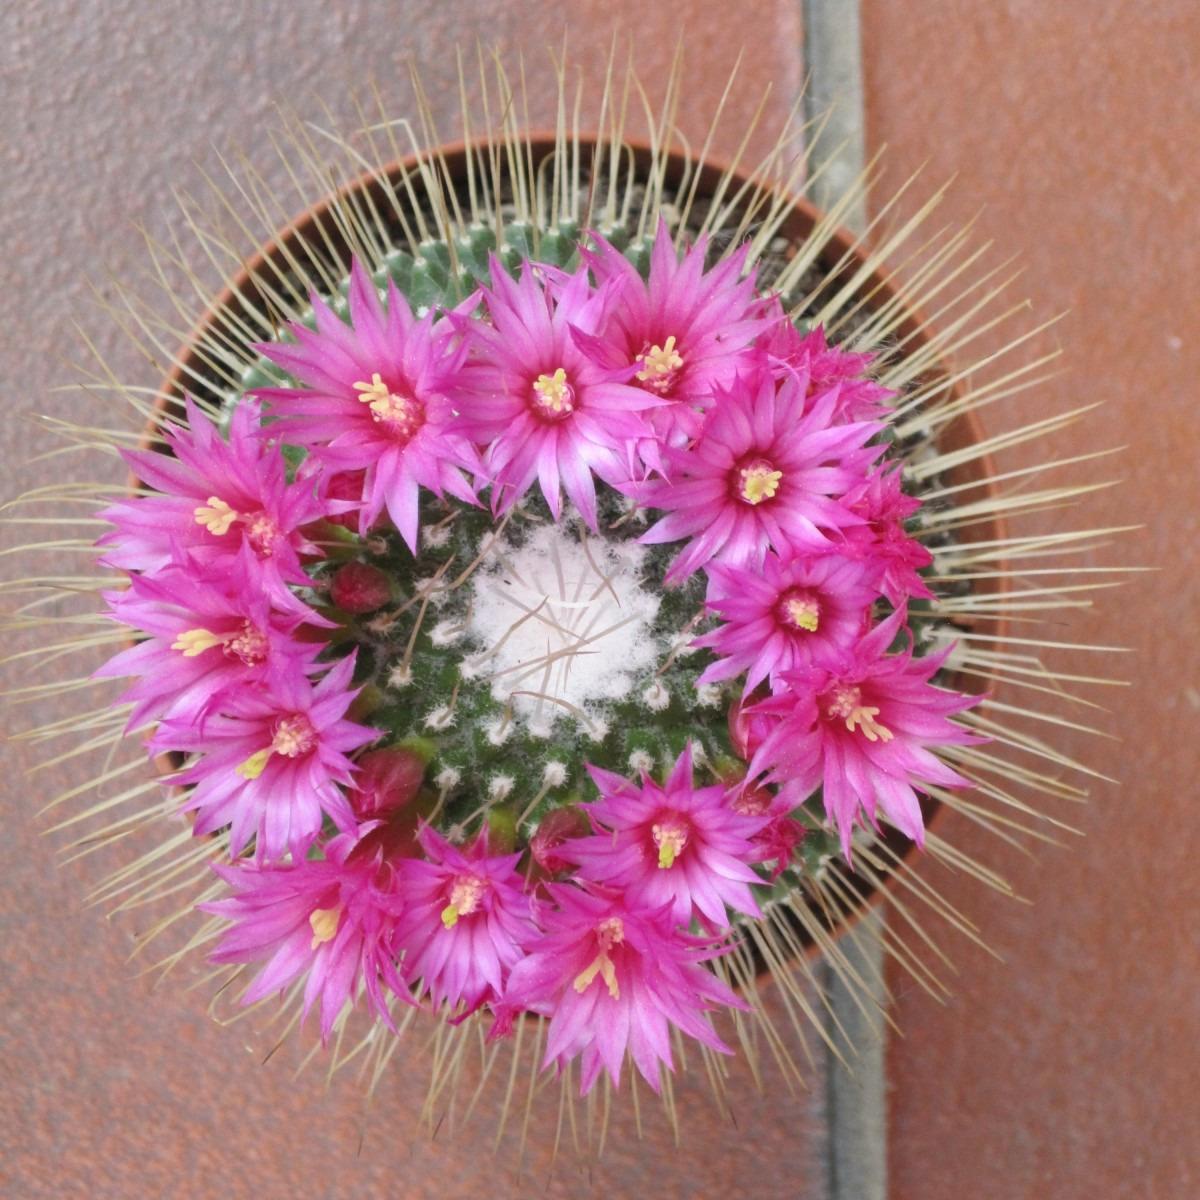 10 Most Beautiful Plants in the World